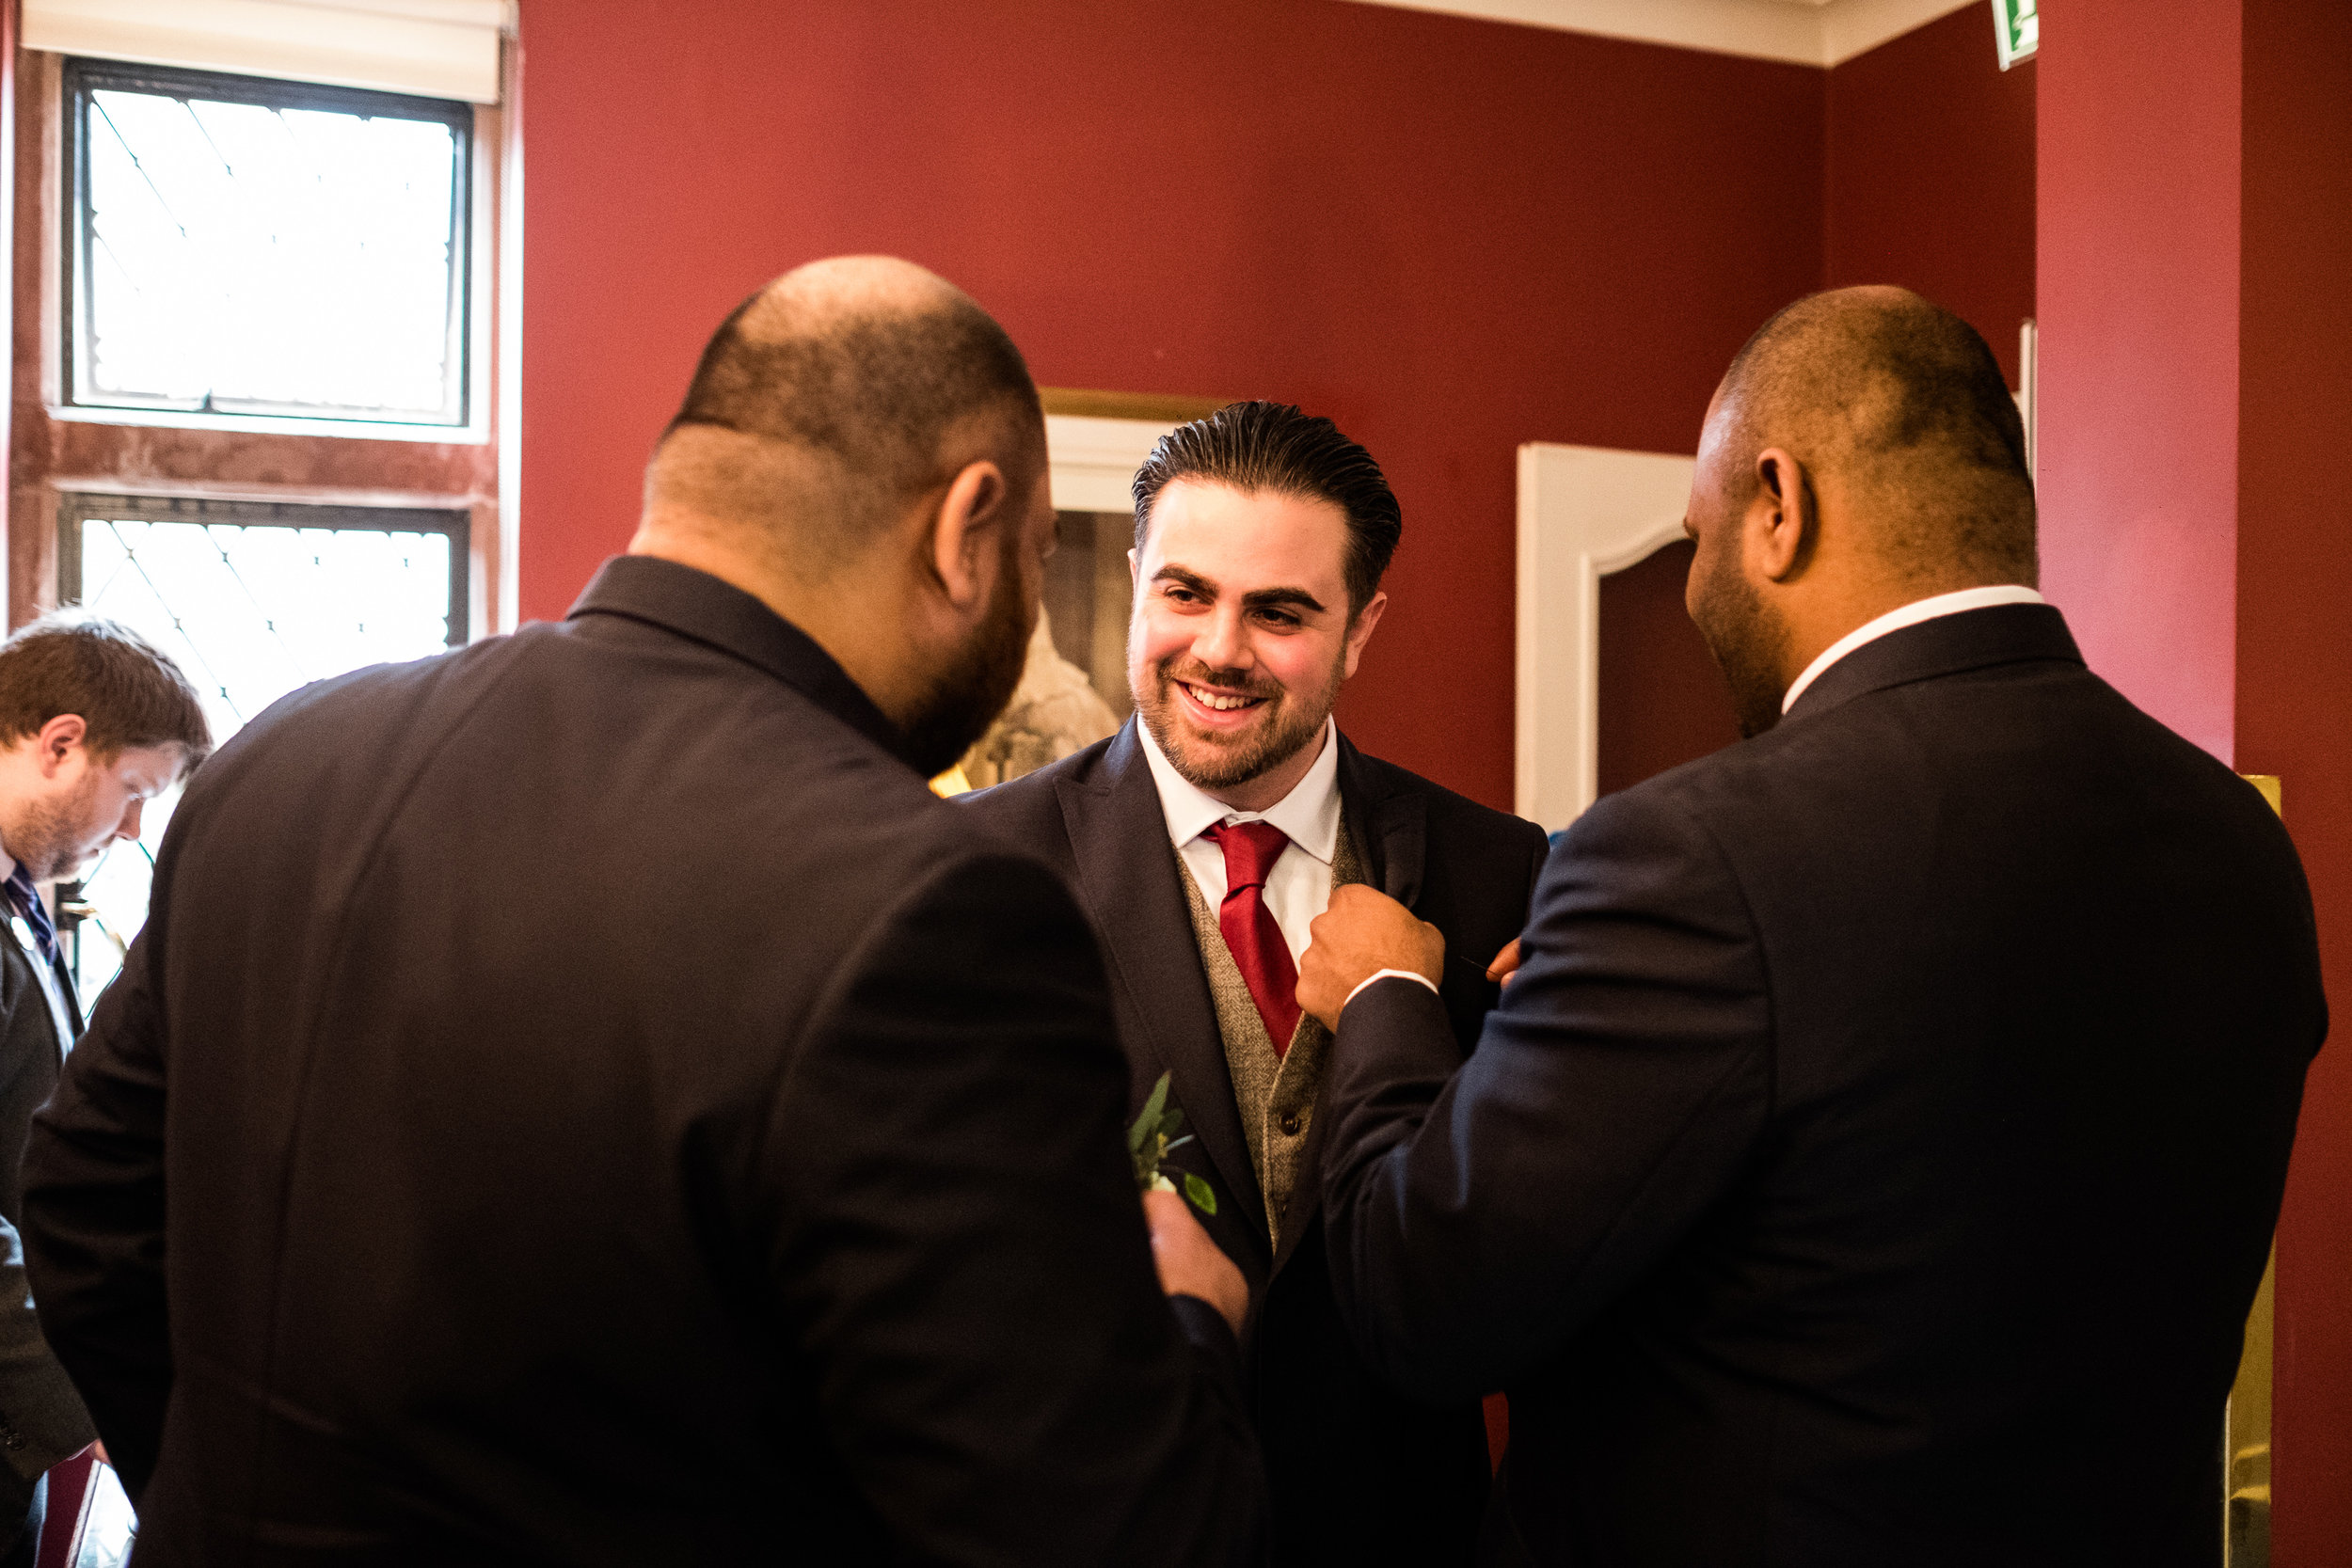 Birmingham Documentary Wedding Photography at New Hall, Sutton Coldfield Turkish Red Candid Reportage - Jenny Harper-17.jpg